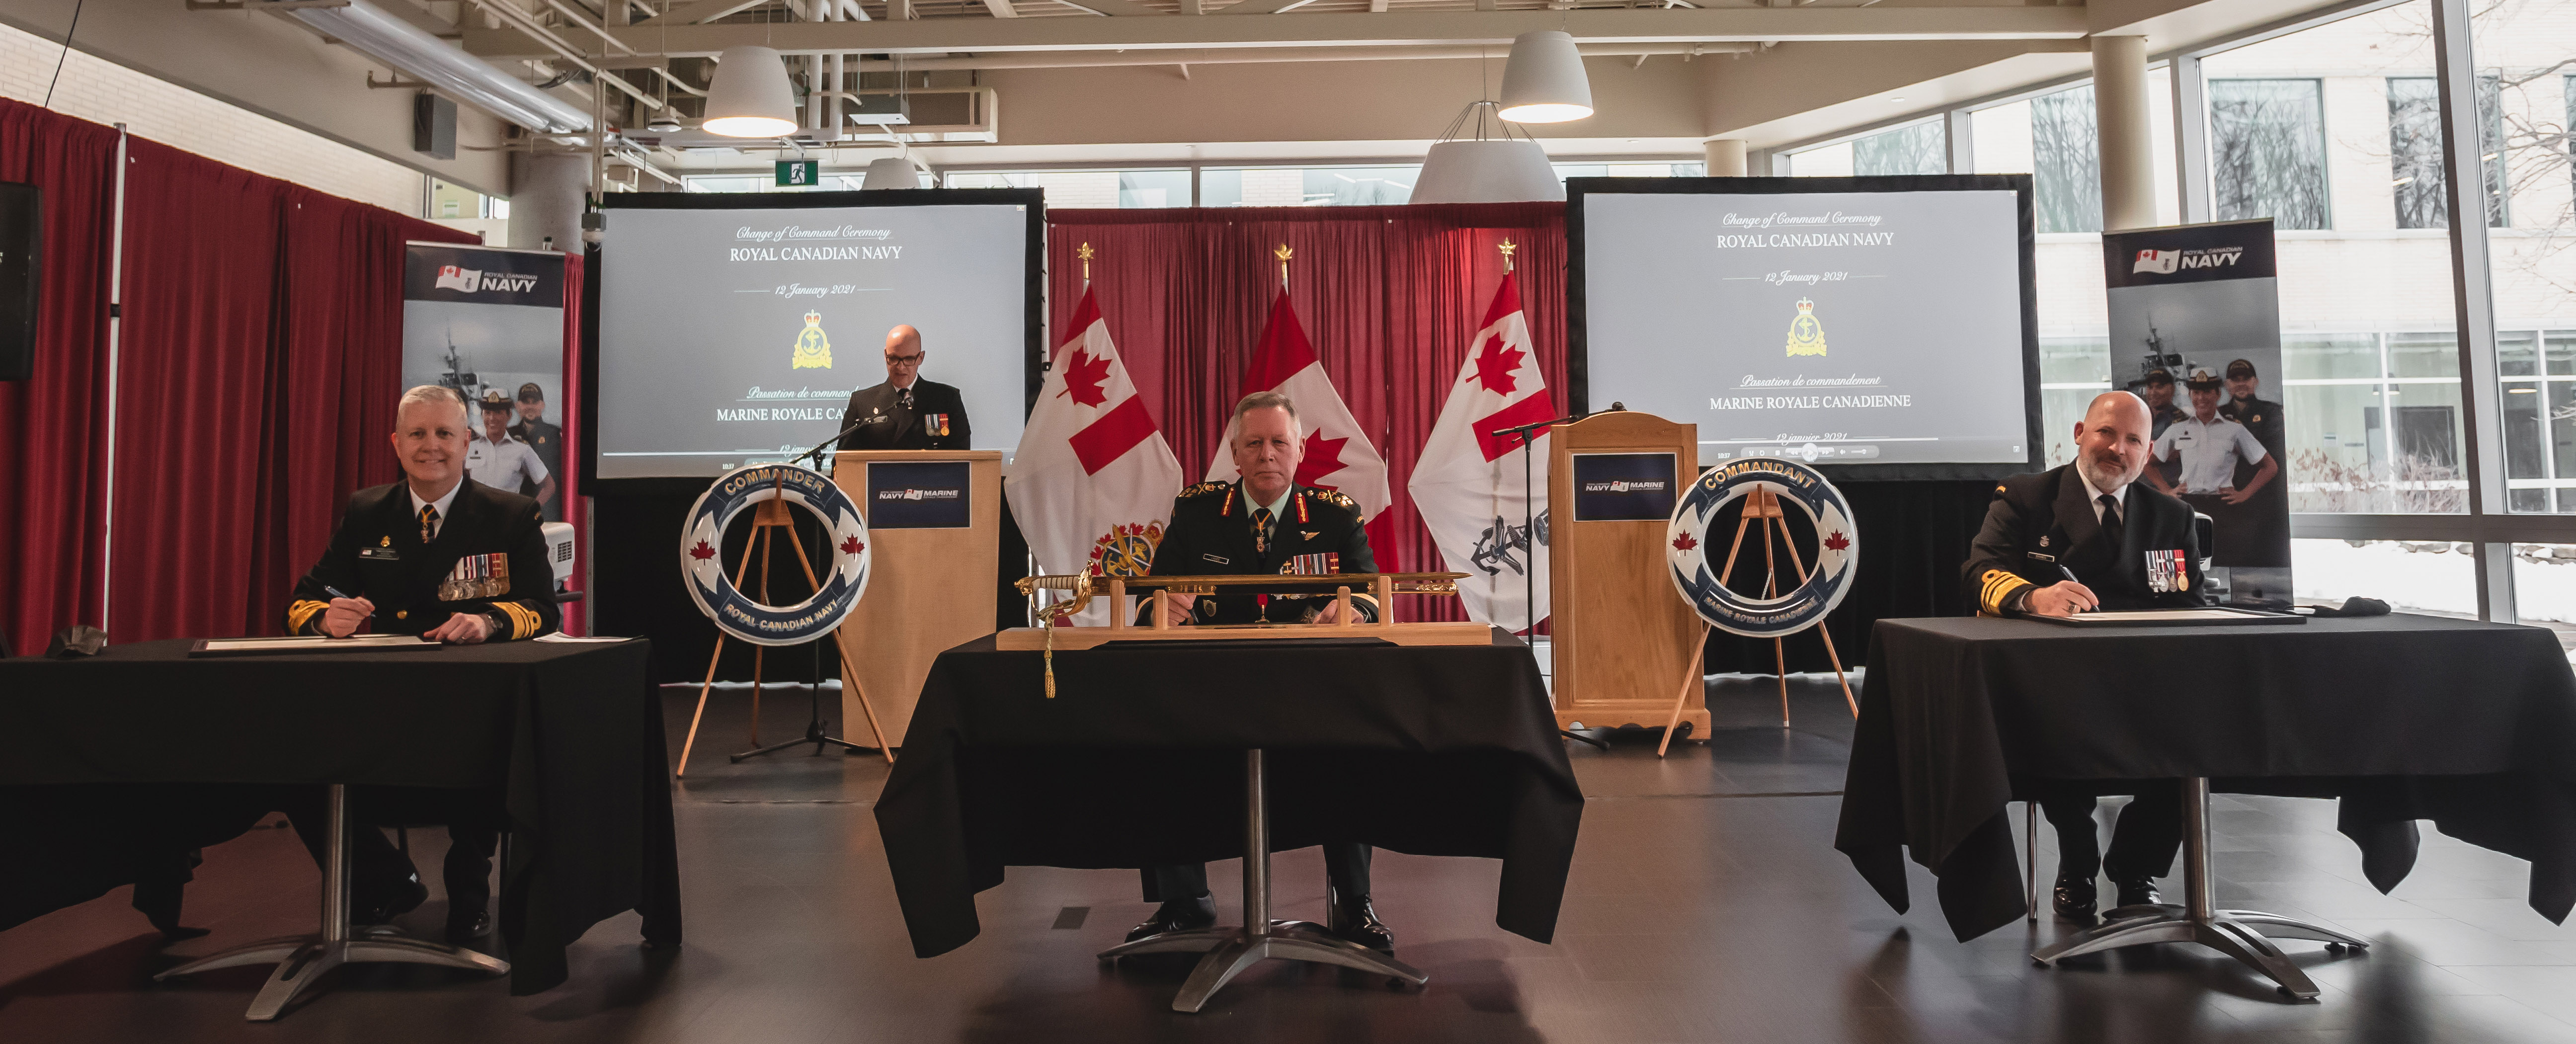 Commander Royal Canadian Navy change of command ceremony January 12